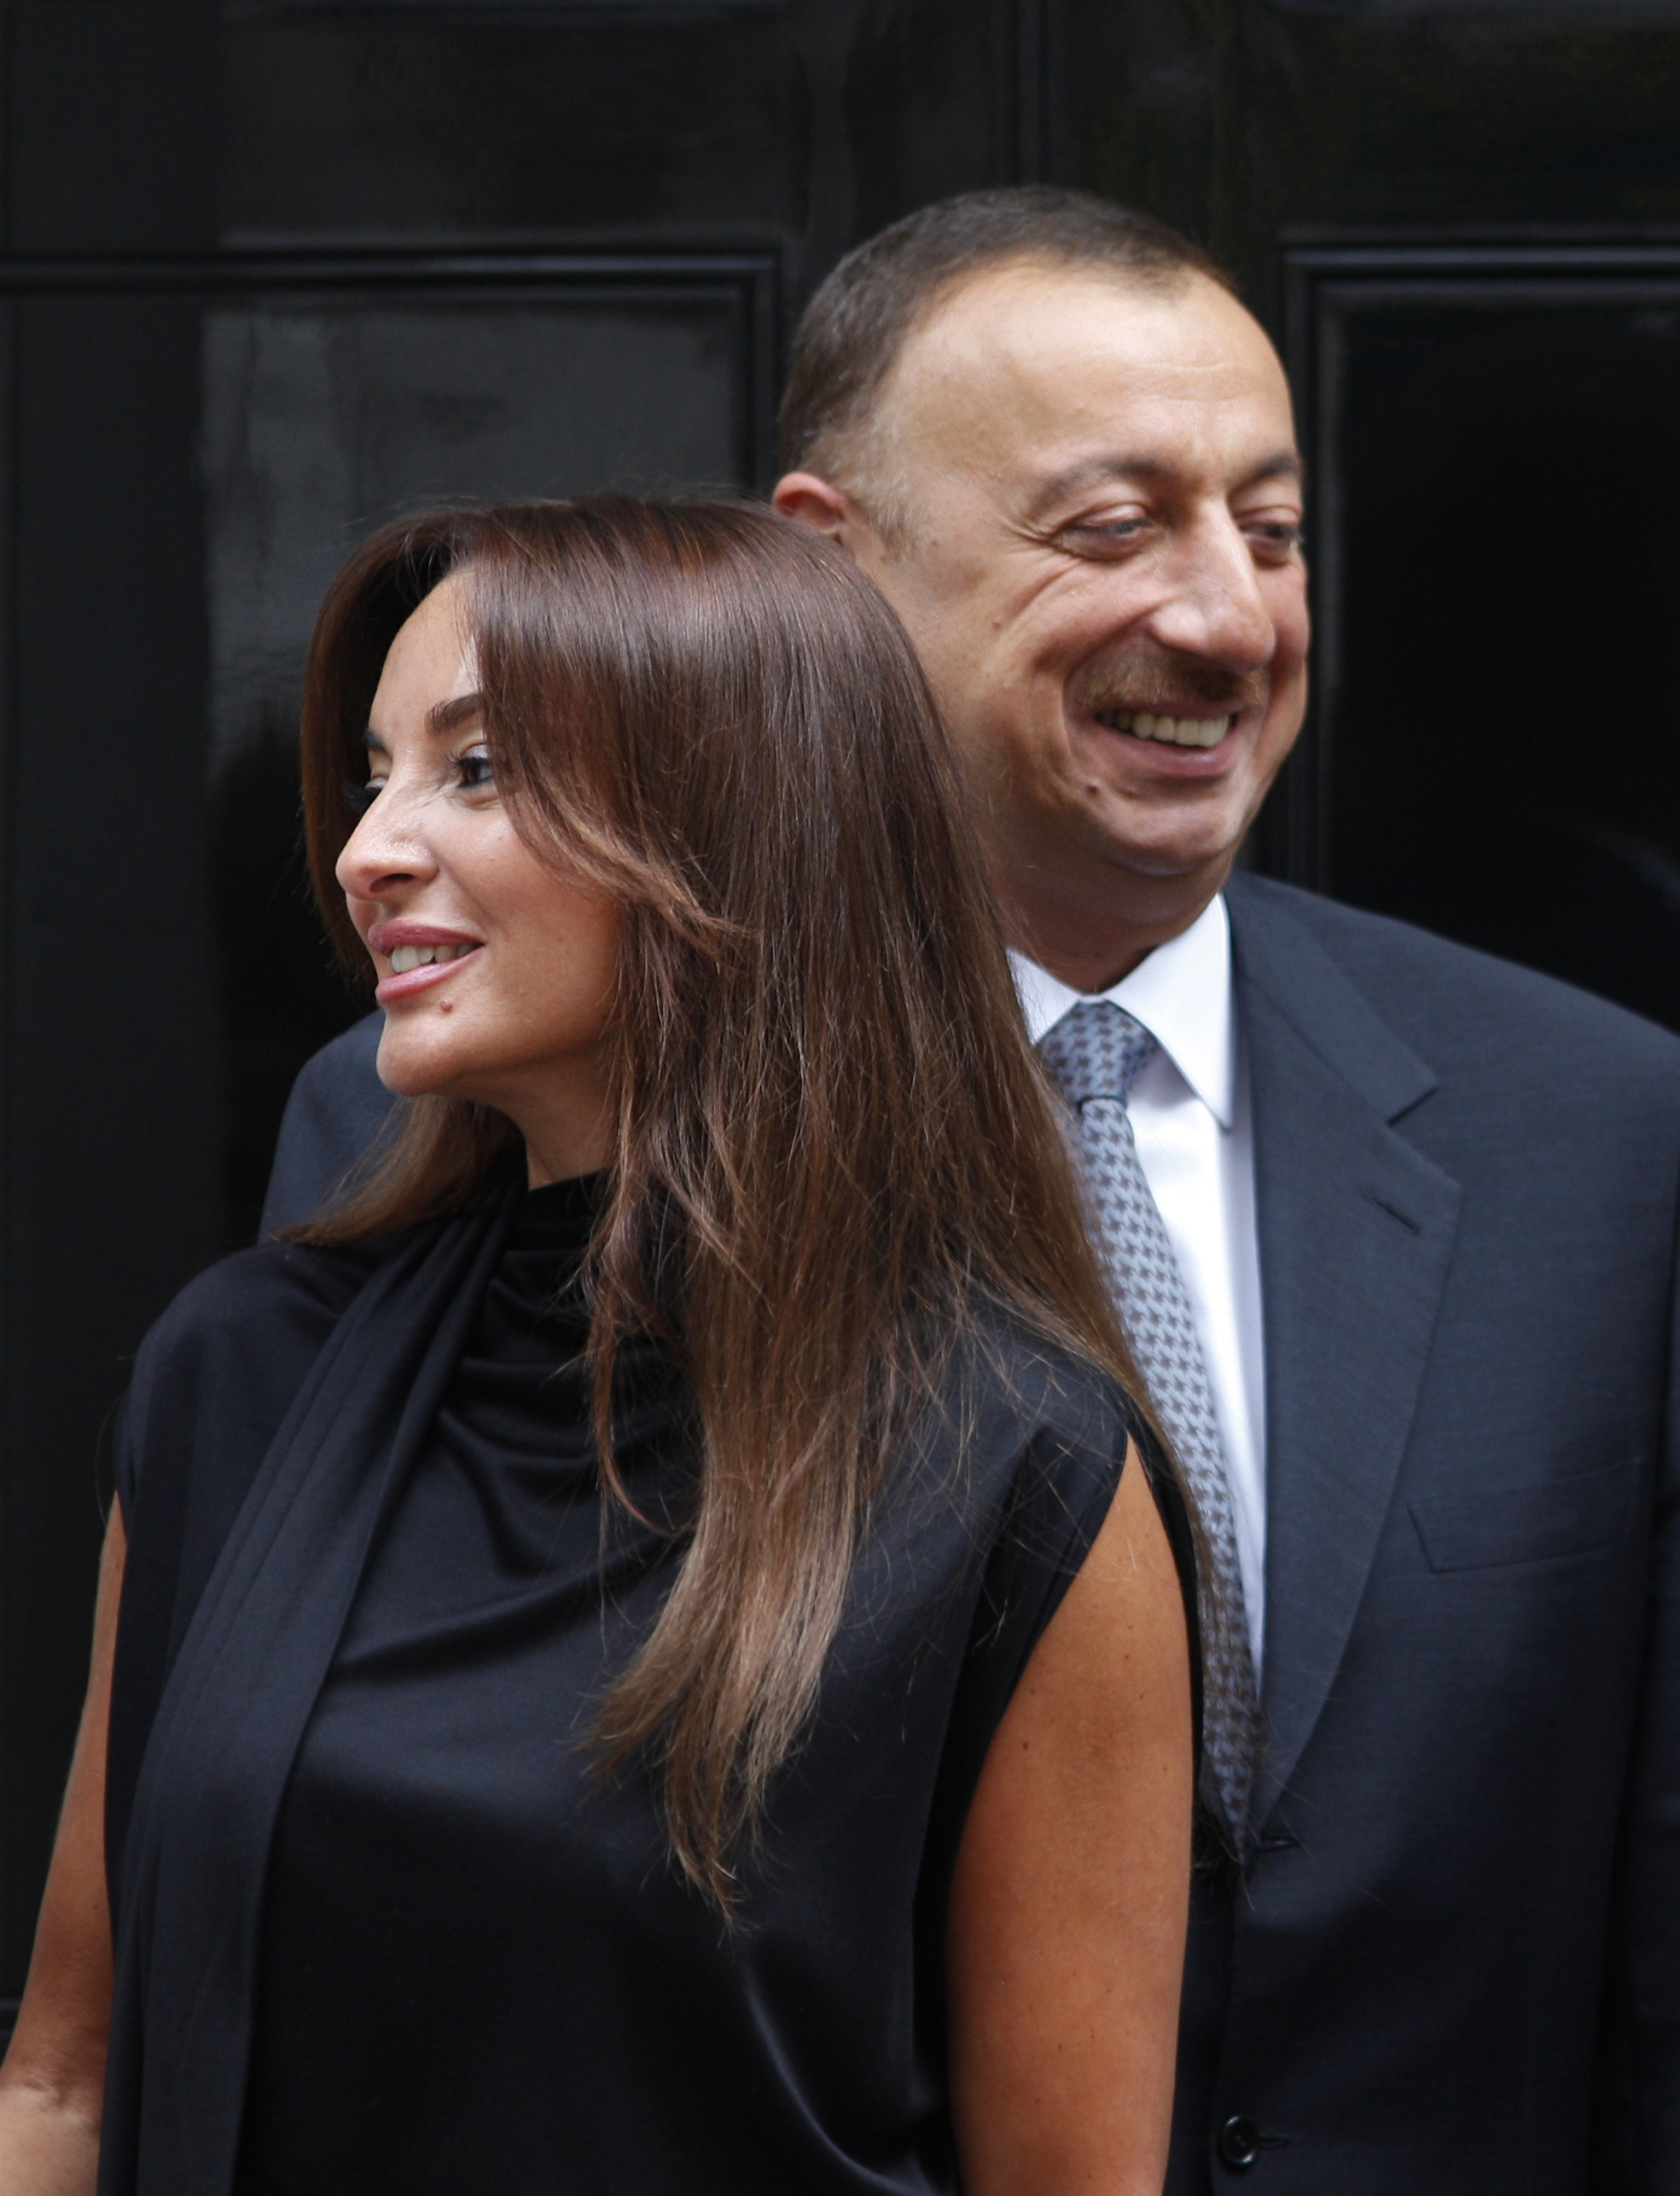 Azerbaijan's President Ilham Aliyev and his wife Mehriban Aliyeva outside the official residence at 10 Downing Street in central London on  July 13, 2009. (AP Photo/Lefteris Pitarakis)